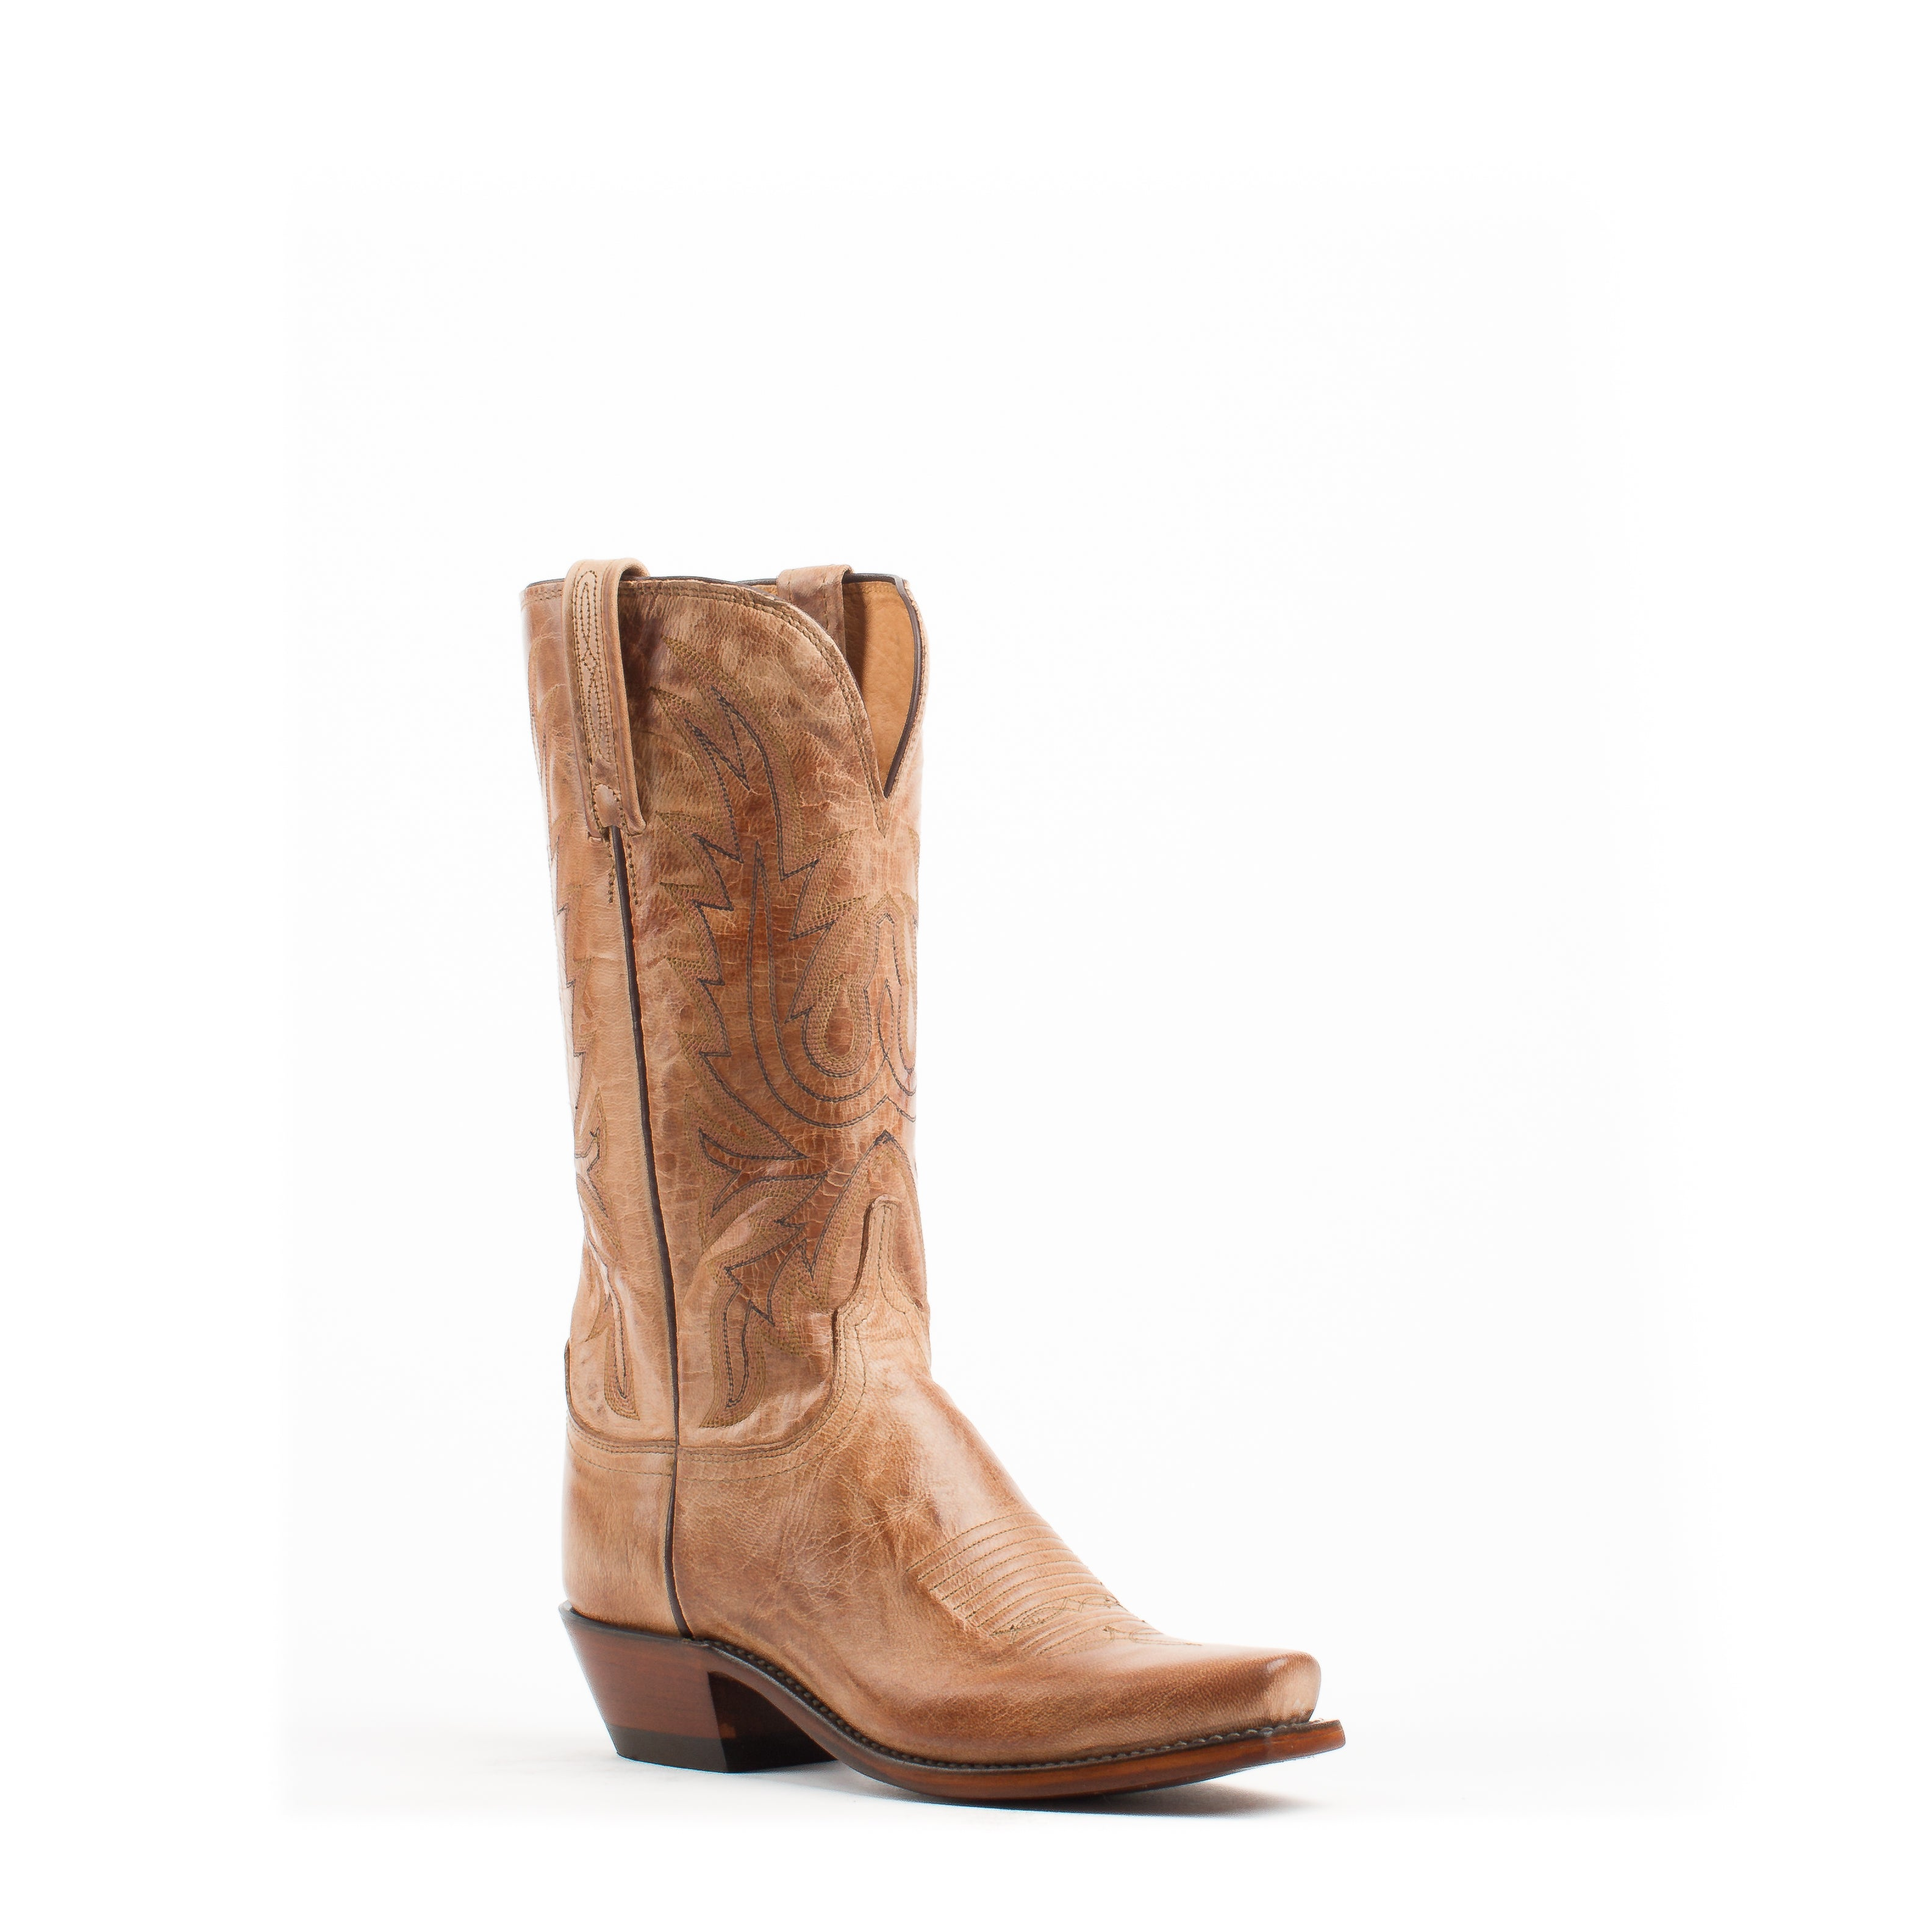 3088410cf5d Women s Lucchese Tan Burnished Mad Dog Goat Boots  N4540-7 4 ...